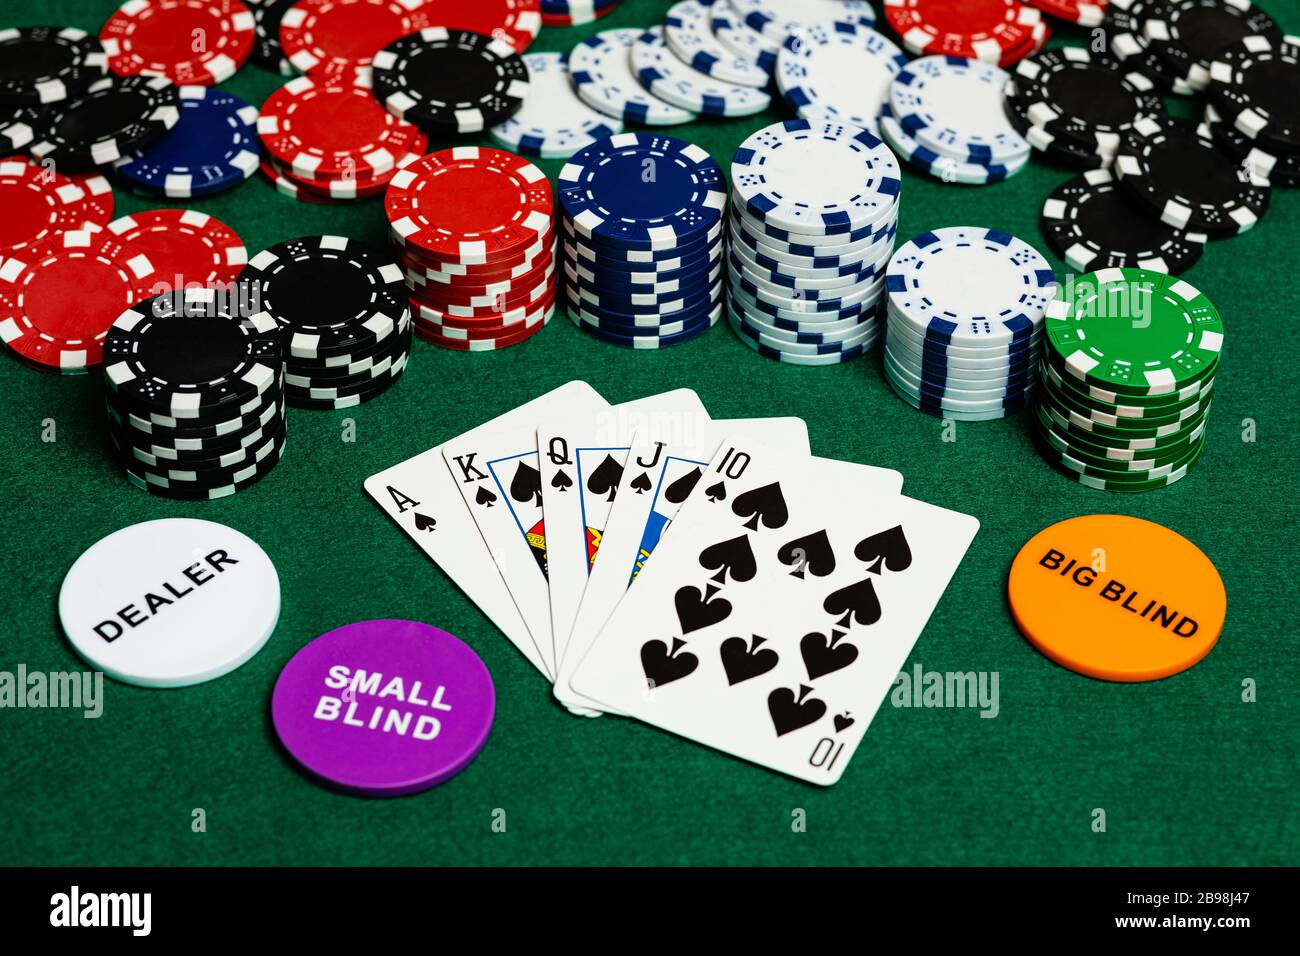 Ace High Poker High Resolution Stock Photography And Images Alamy